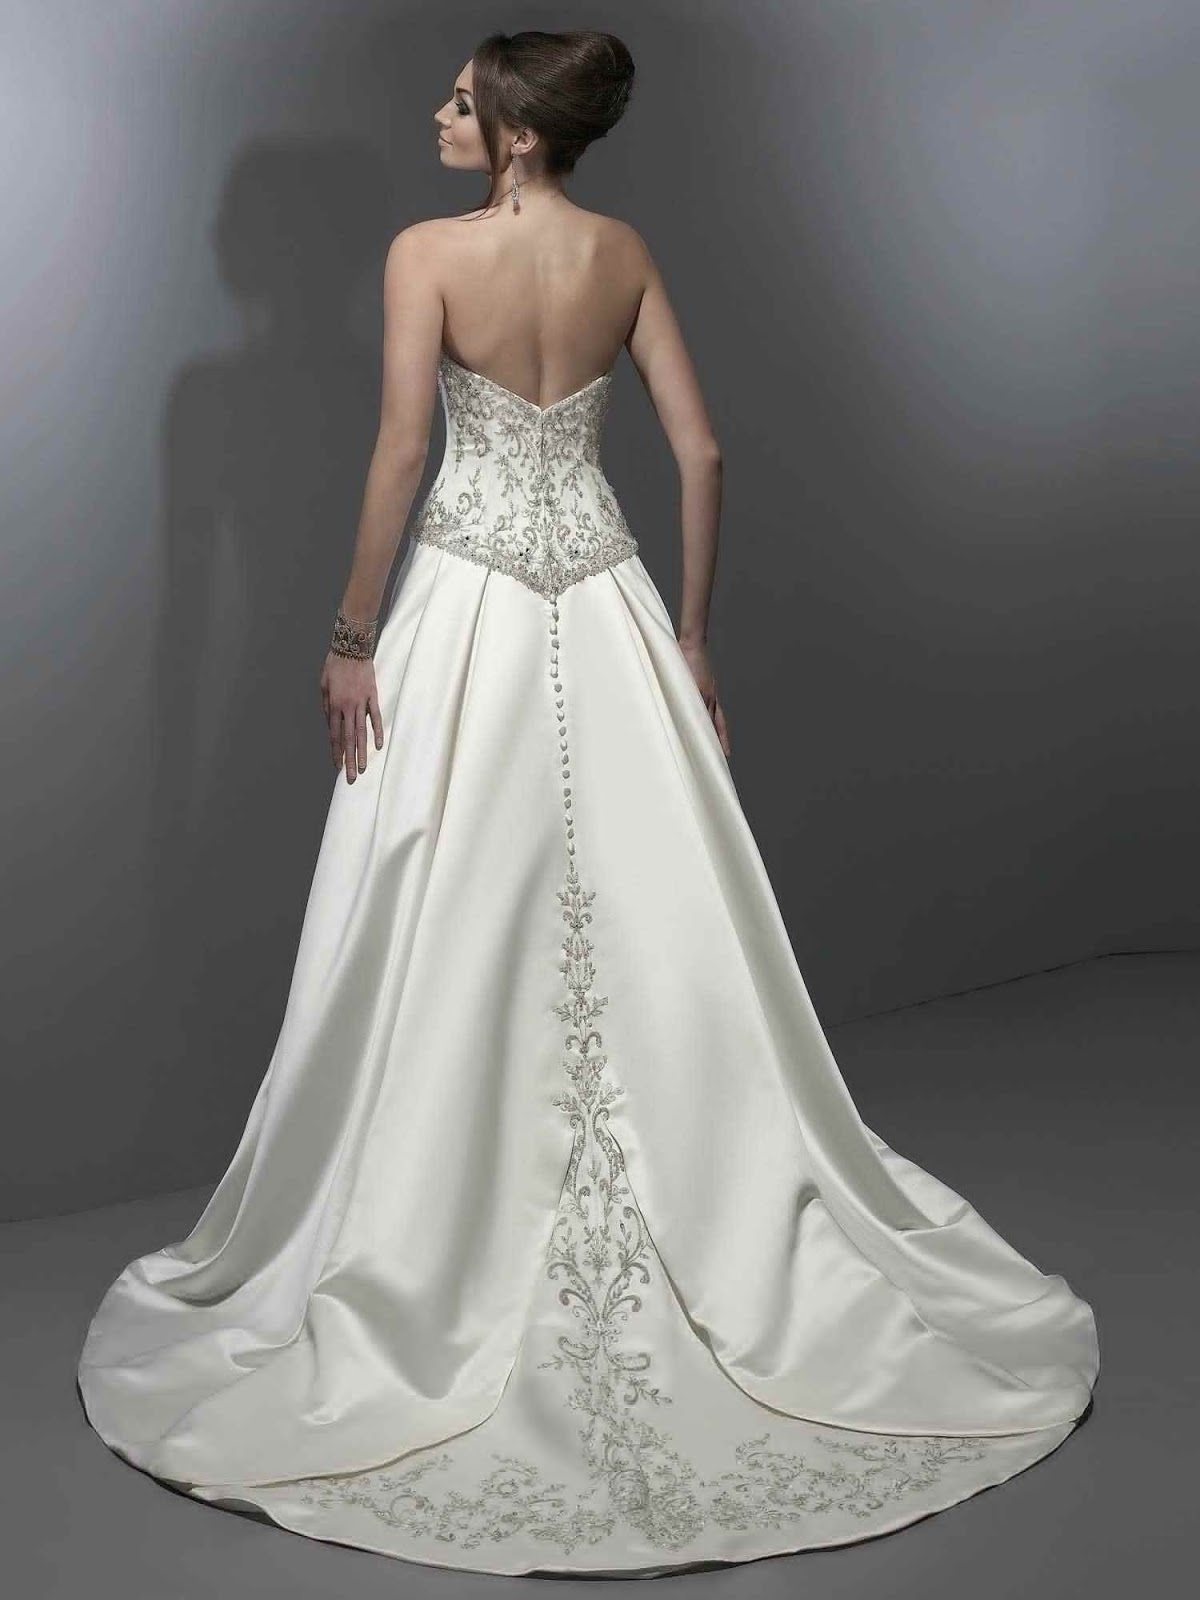 Kenneth winston bridal 2013 spring wedding dresses for Kenneth winston wedding dresses